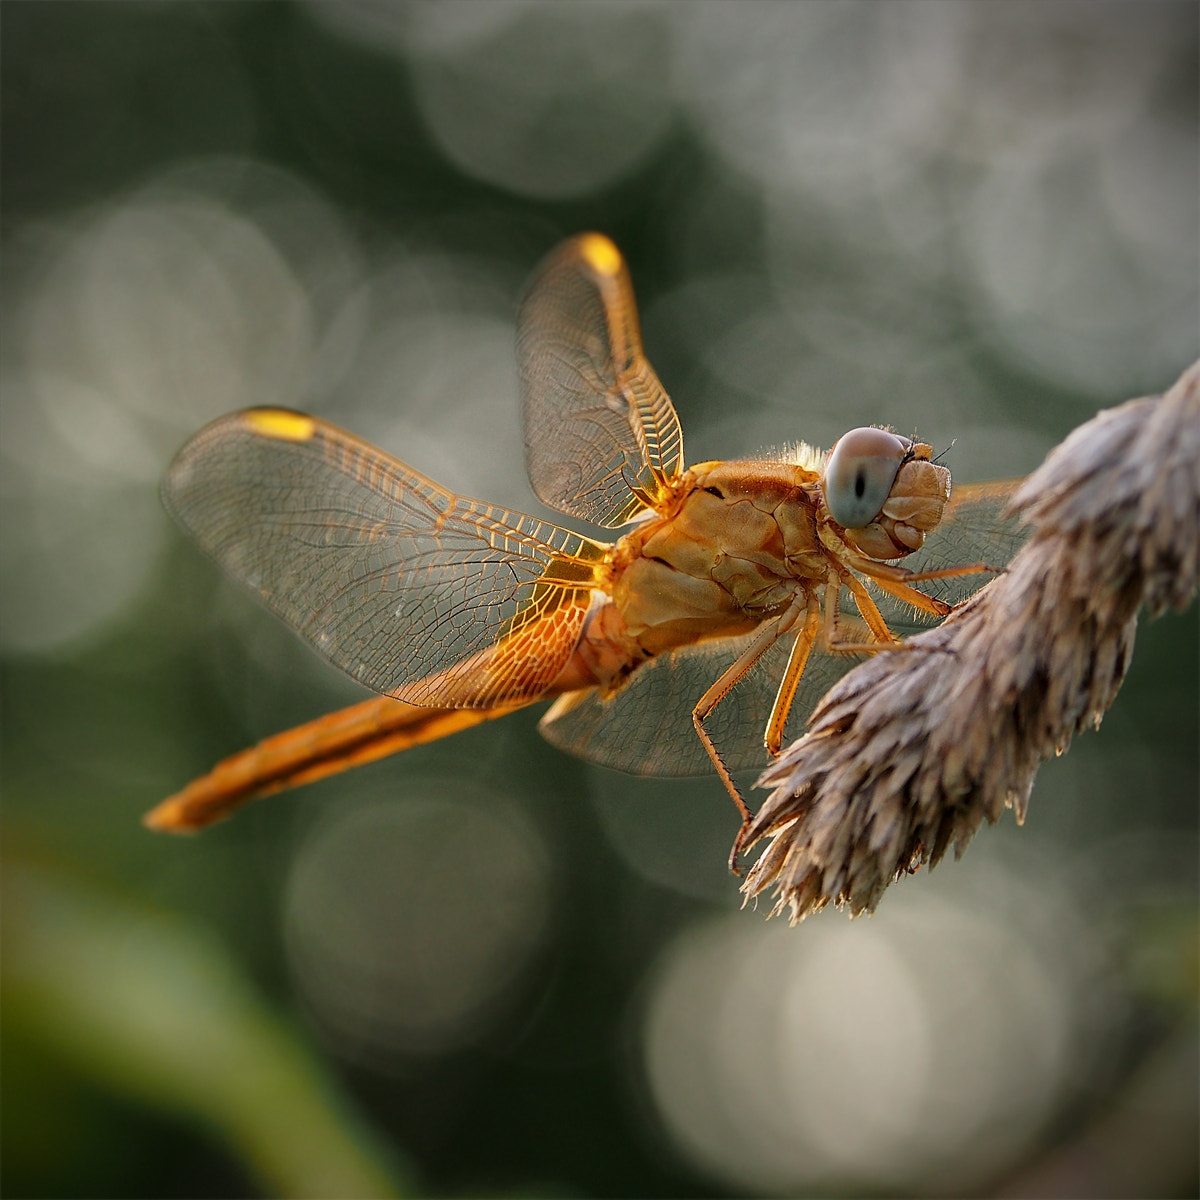 Photograph Dragonflay by ivo pandoli on 500px